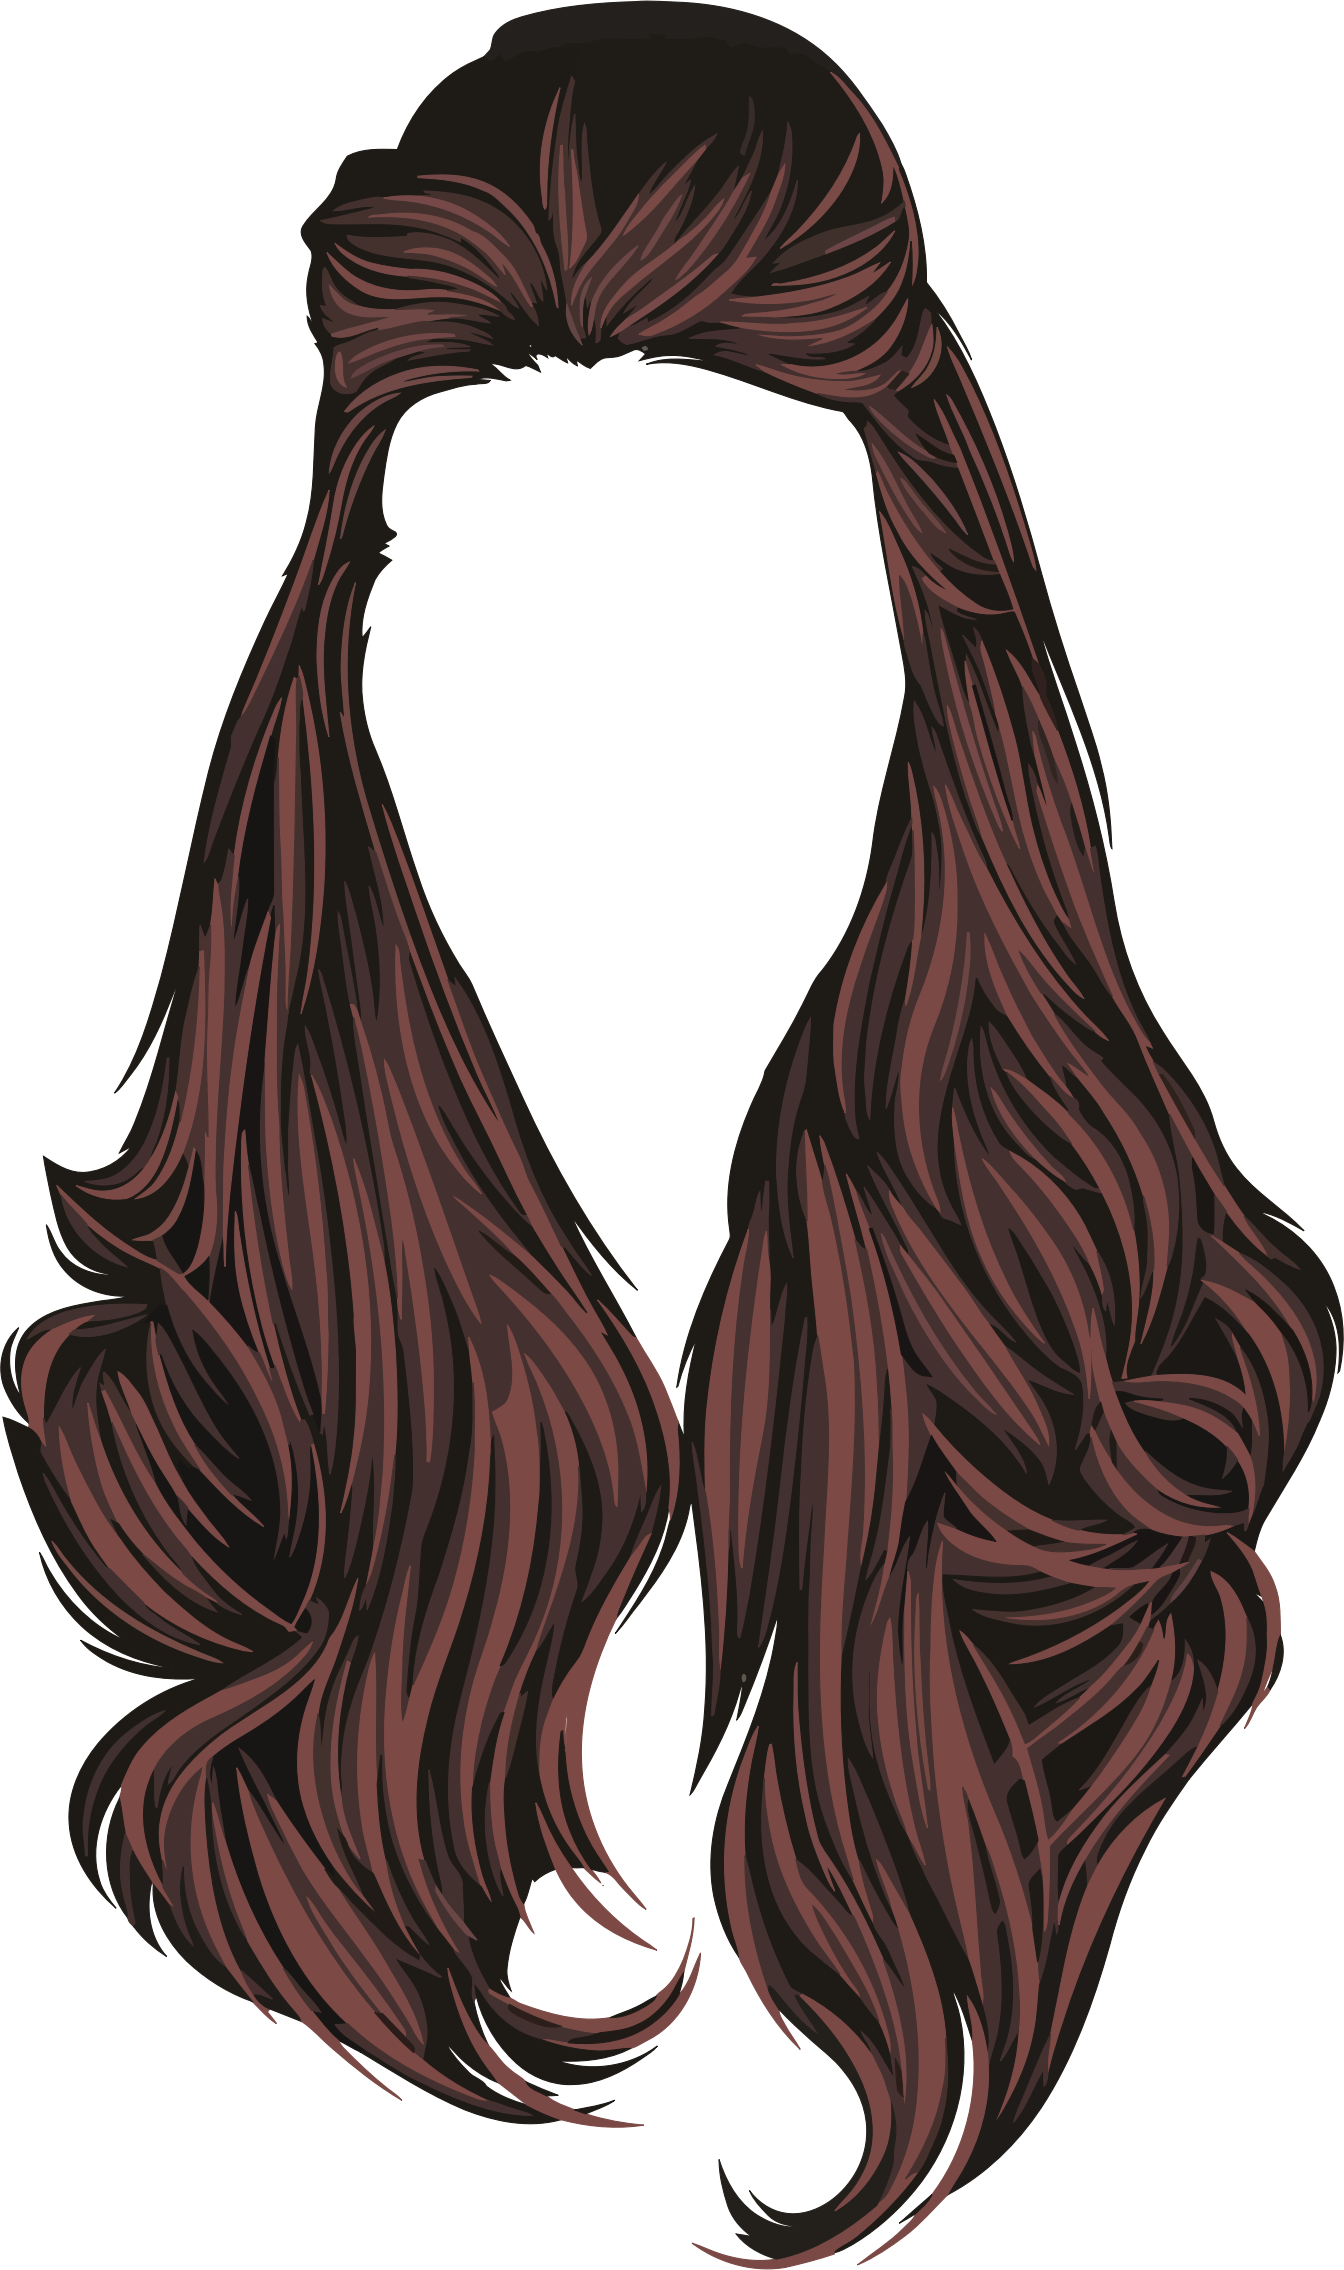 Hair clipart png. Collection of high